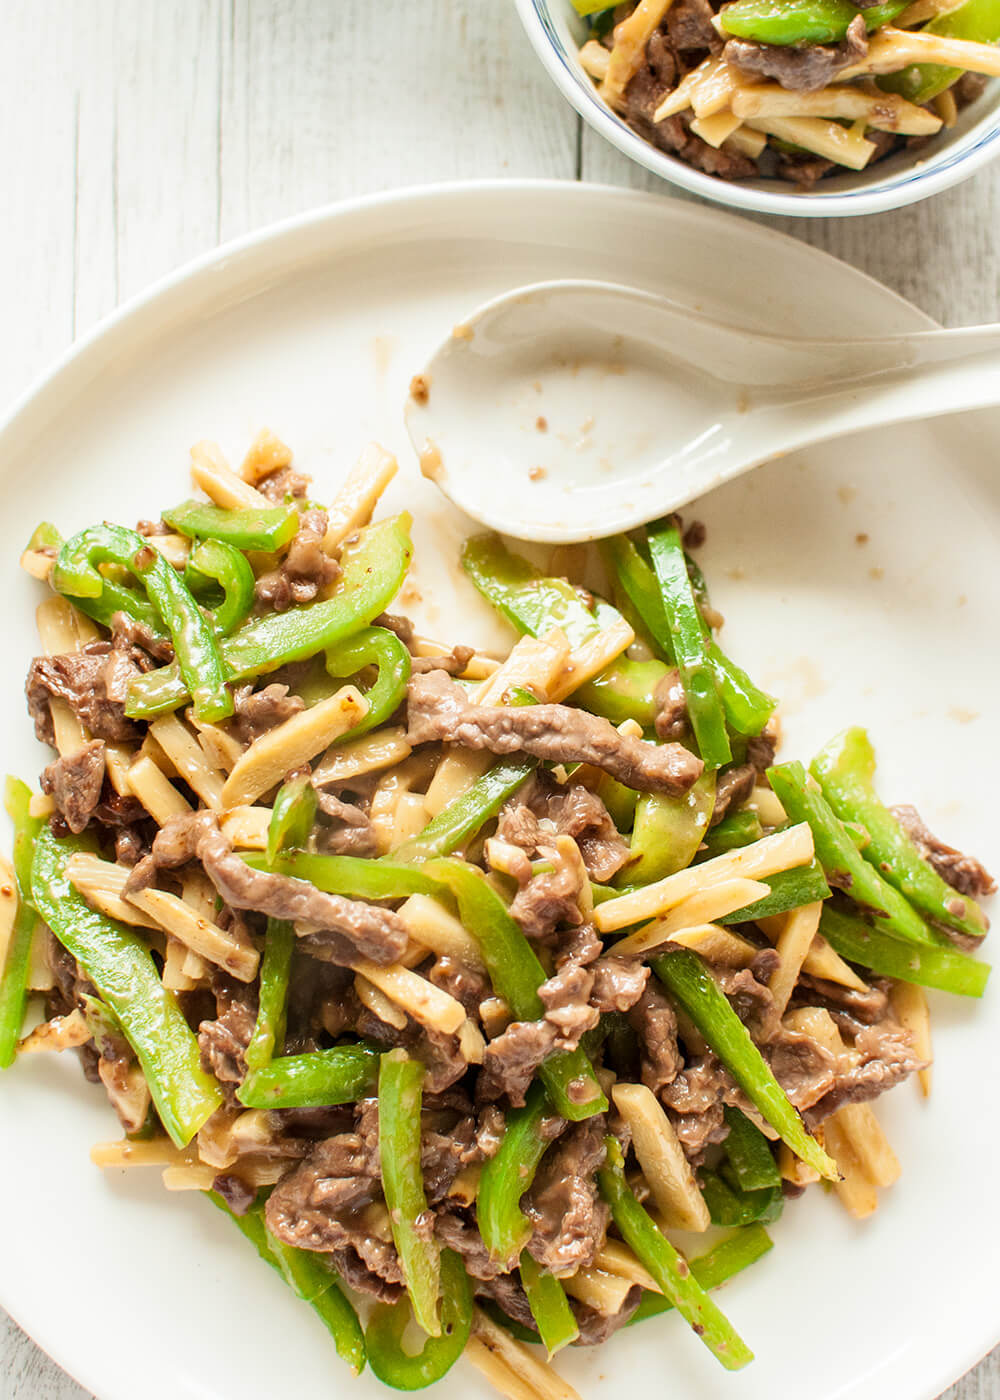 This is a quick stir fry dish that originated in China. Beef, green pepper (capsicum) and bamboo shoots are cut into thin strips and cooked in soy flavoured sauce with a touch of oyster sauce.